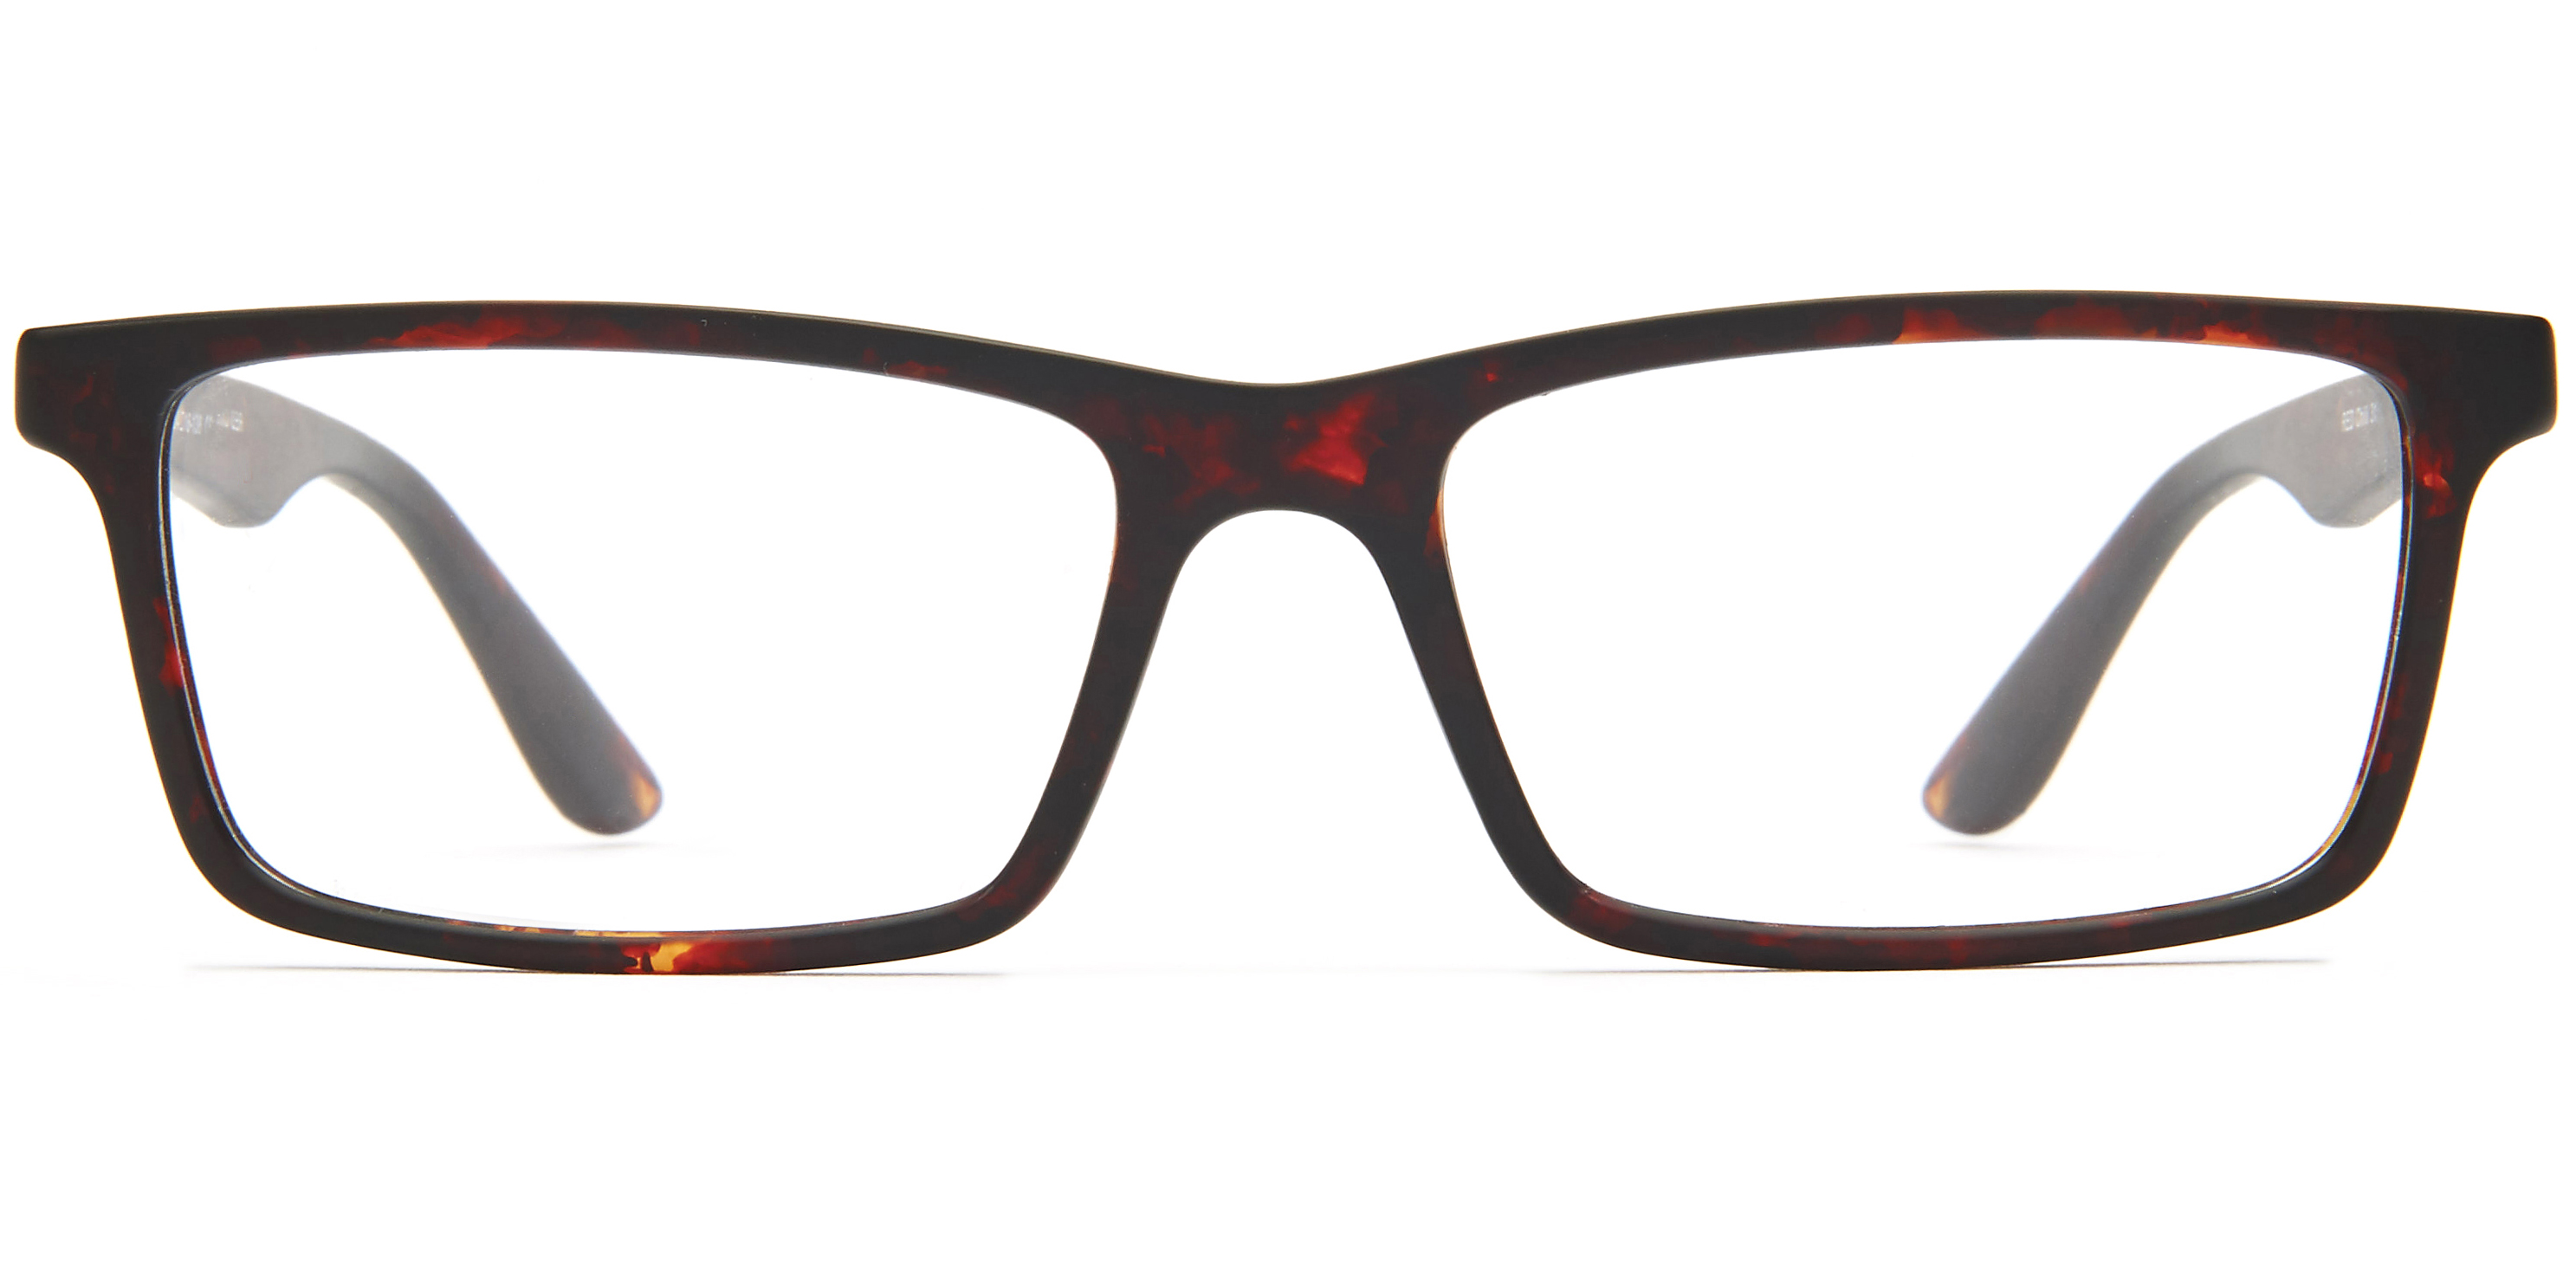 DS Collection glasses REDCHILLI31